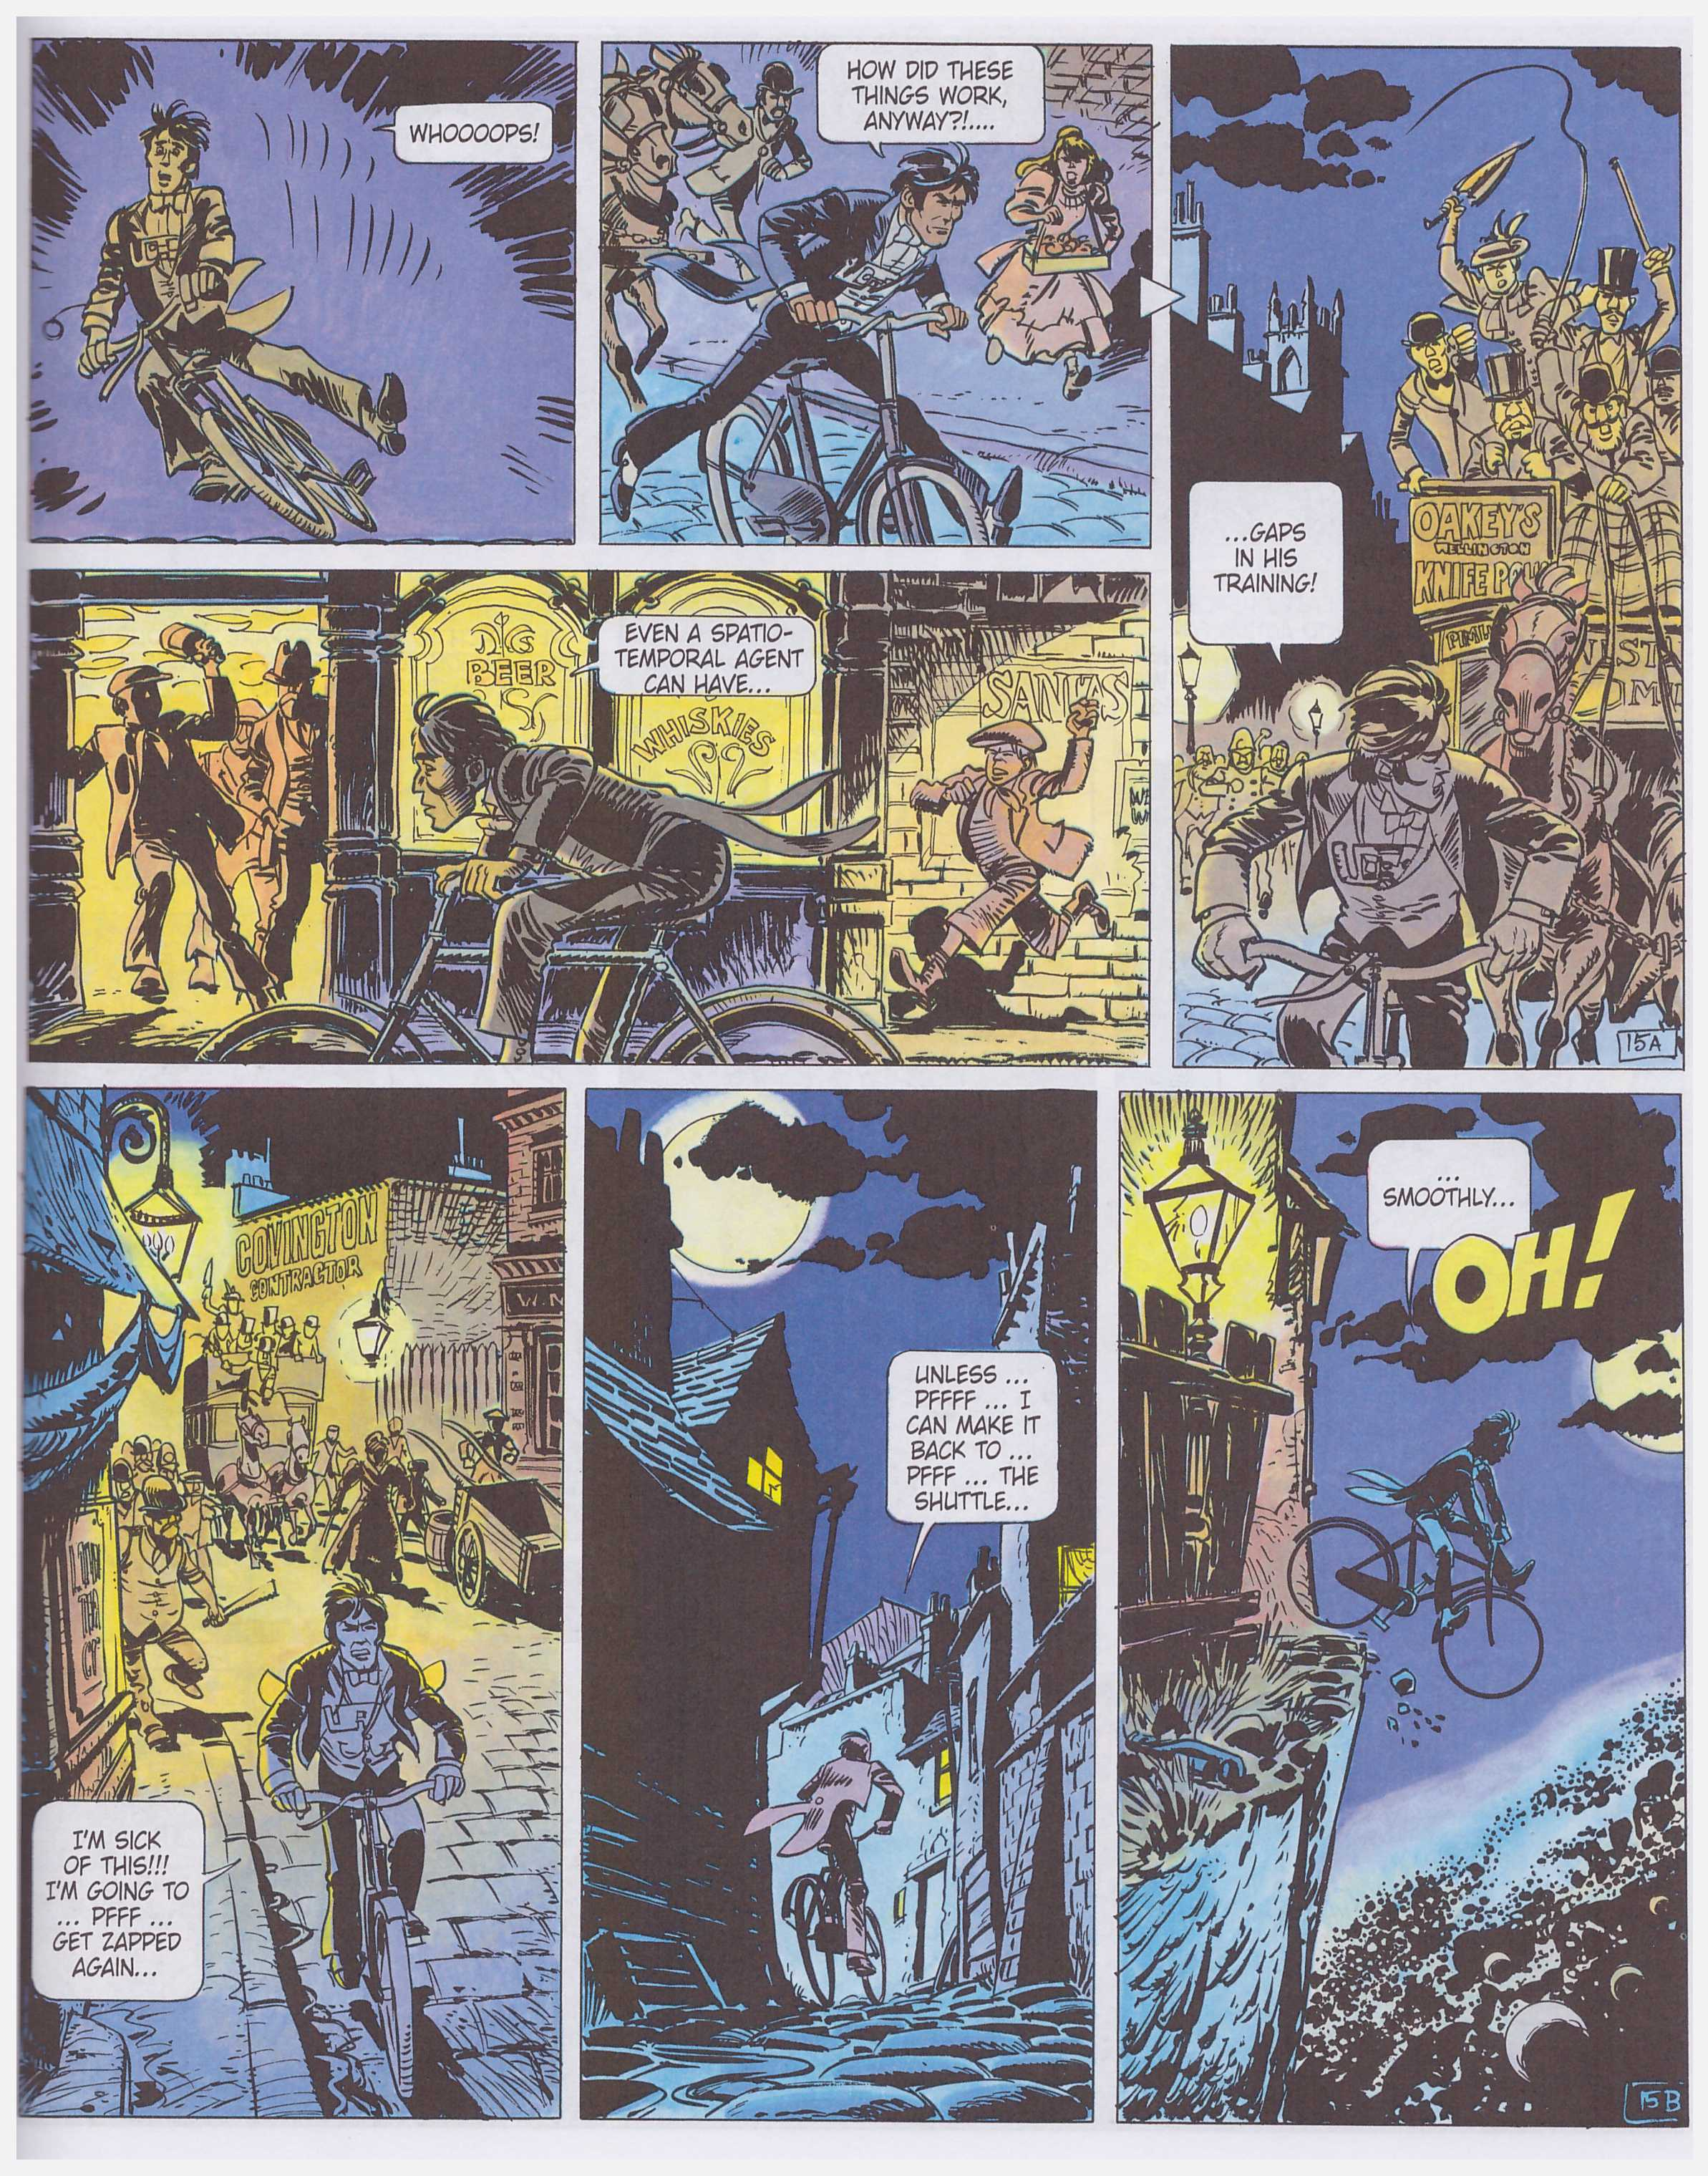 Valerian and Laureline on the False Earths review